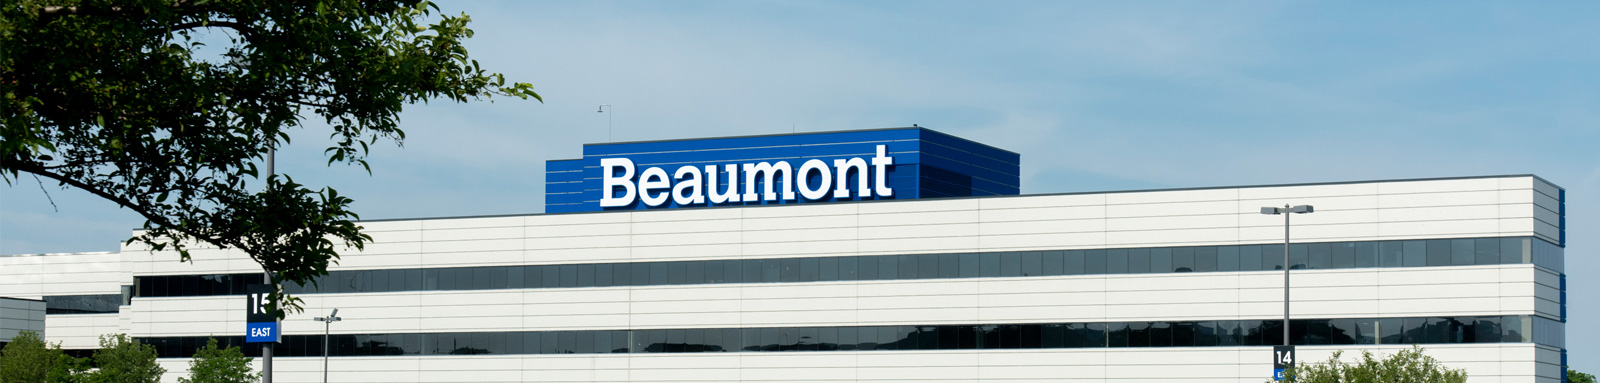 Beaumont Health | Determination Lives Here